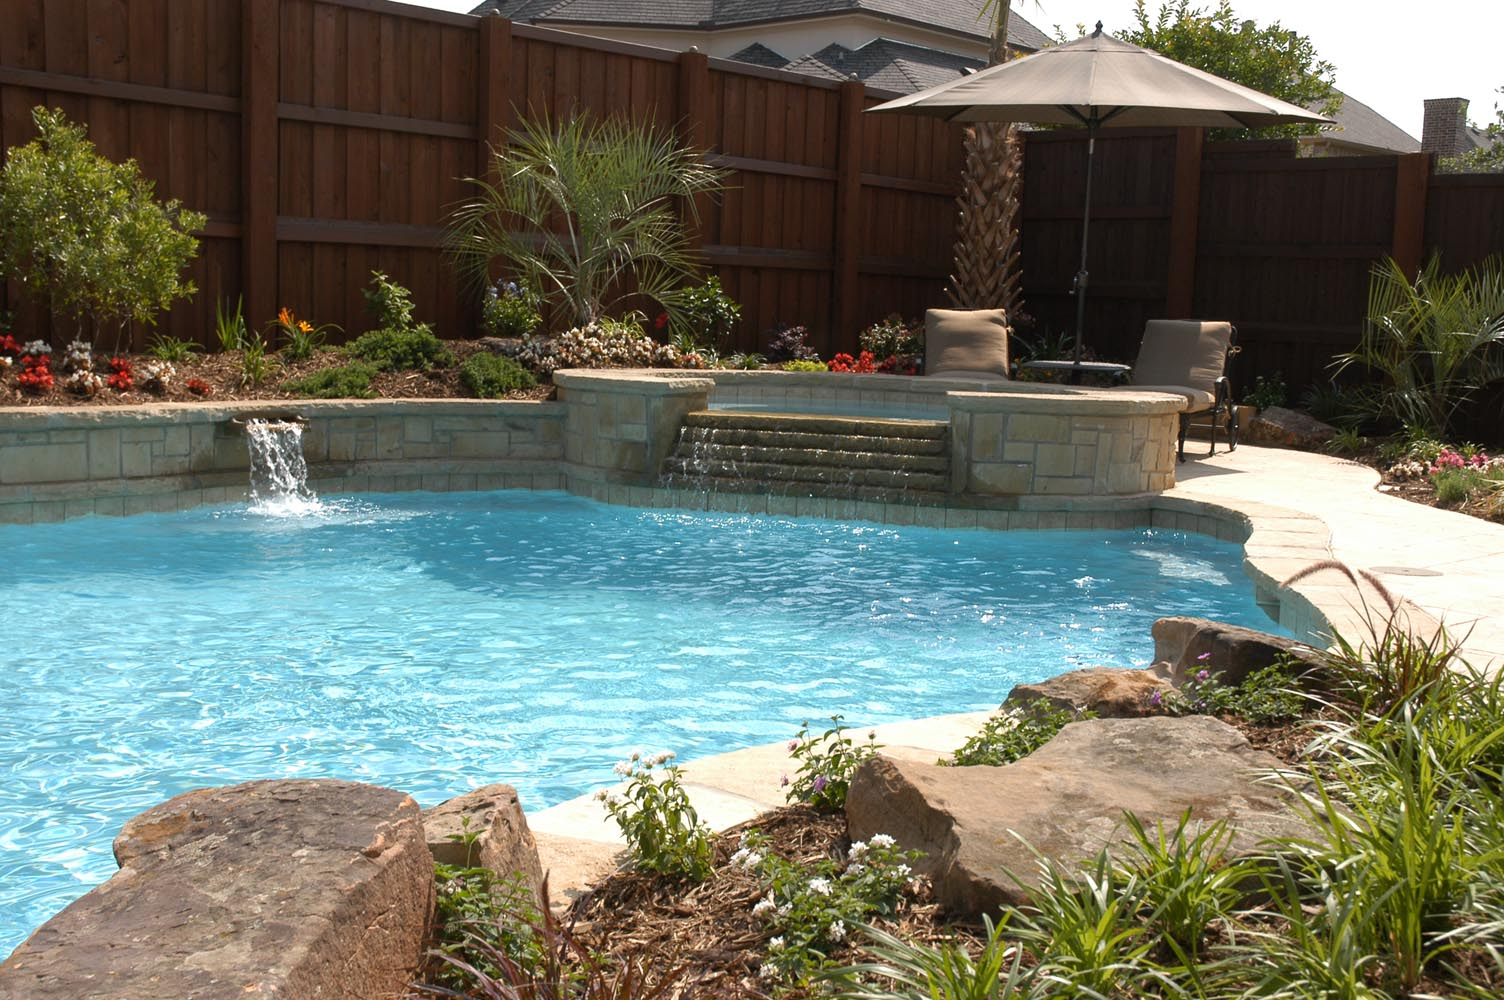 Freeform Pools Photo Gallery, Custom Pools Images, Dallas